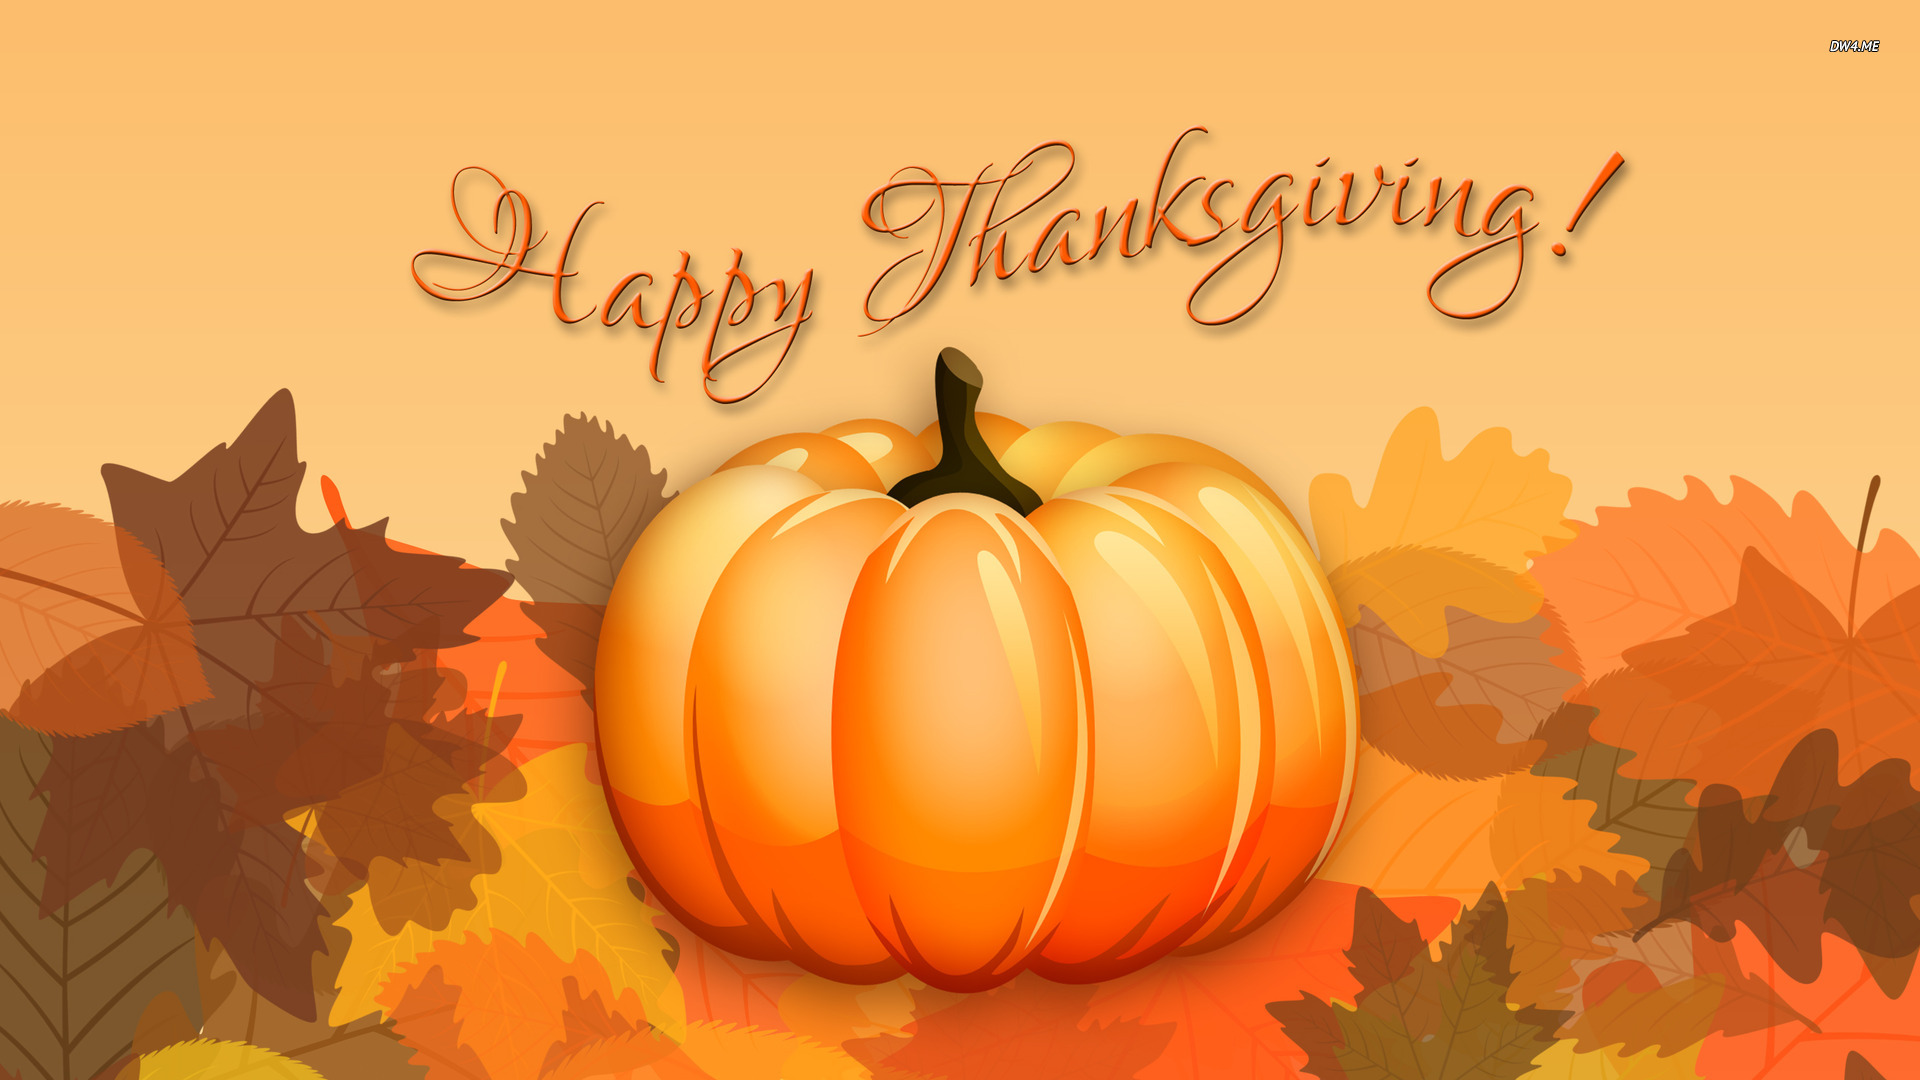 my fanpop friends and i images happy thanksgiving hd wallpaper and